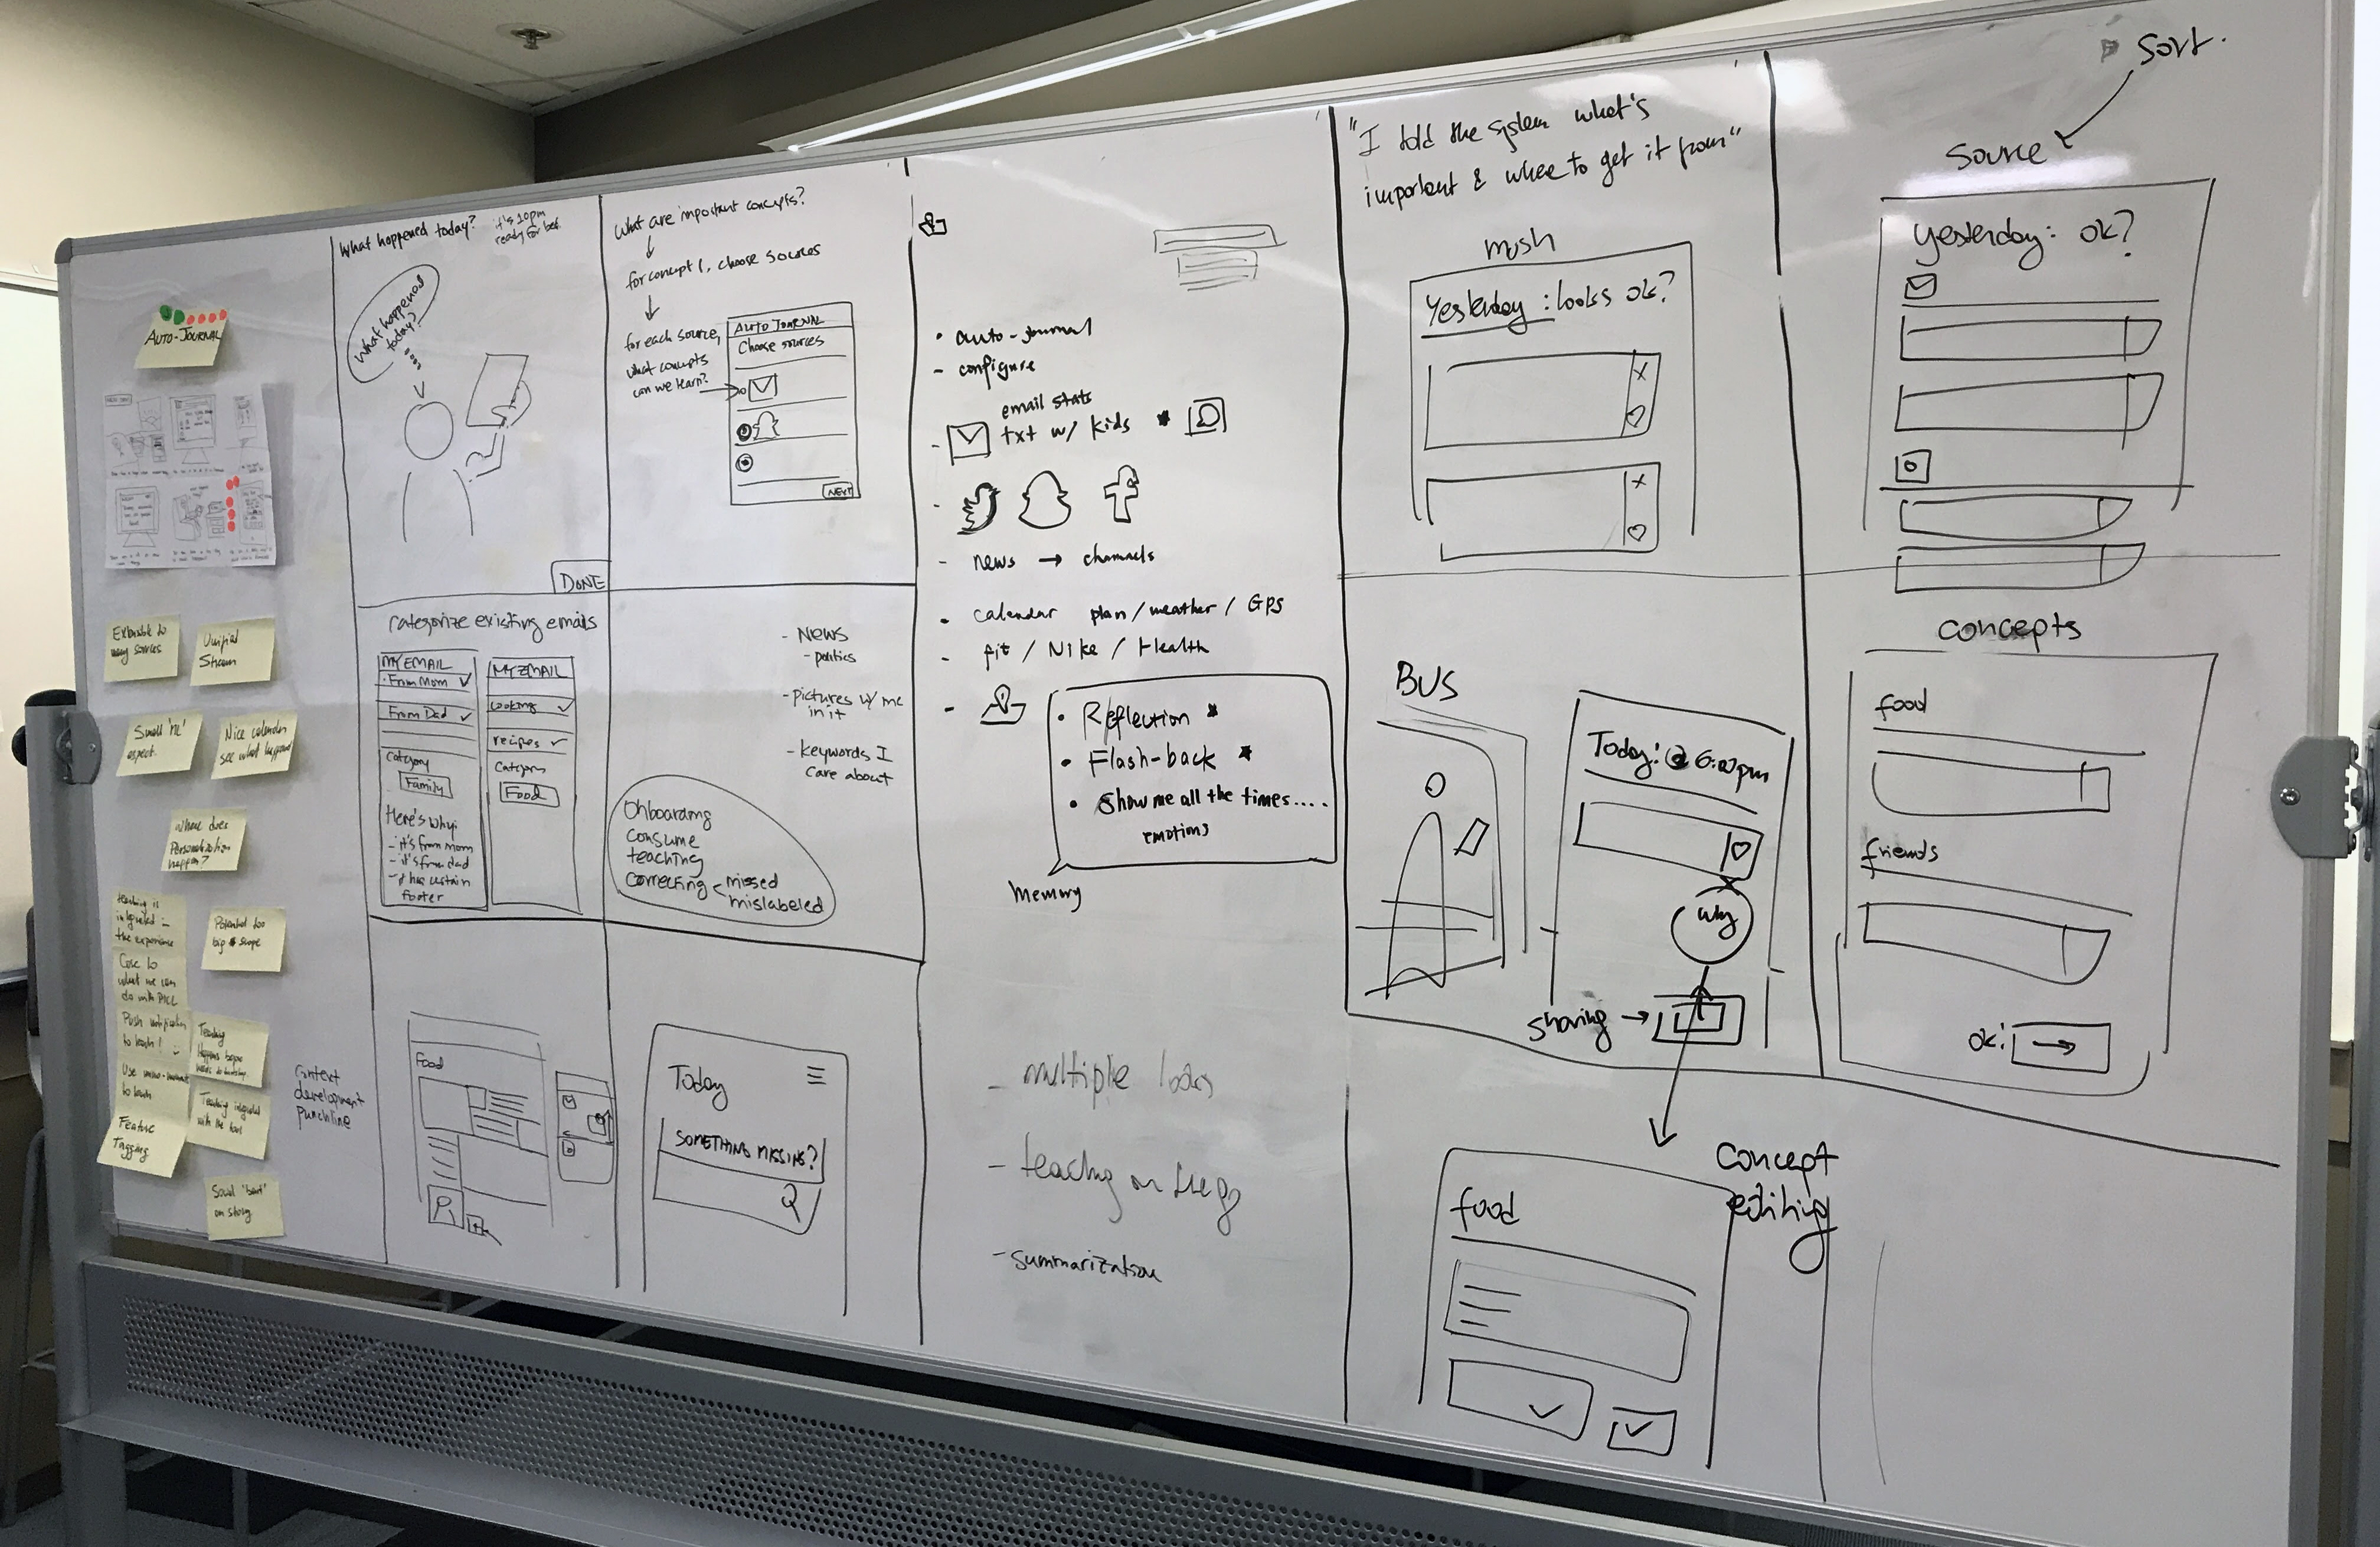 Wireframing of a mobile app, on a whiteboard